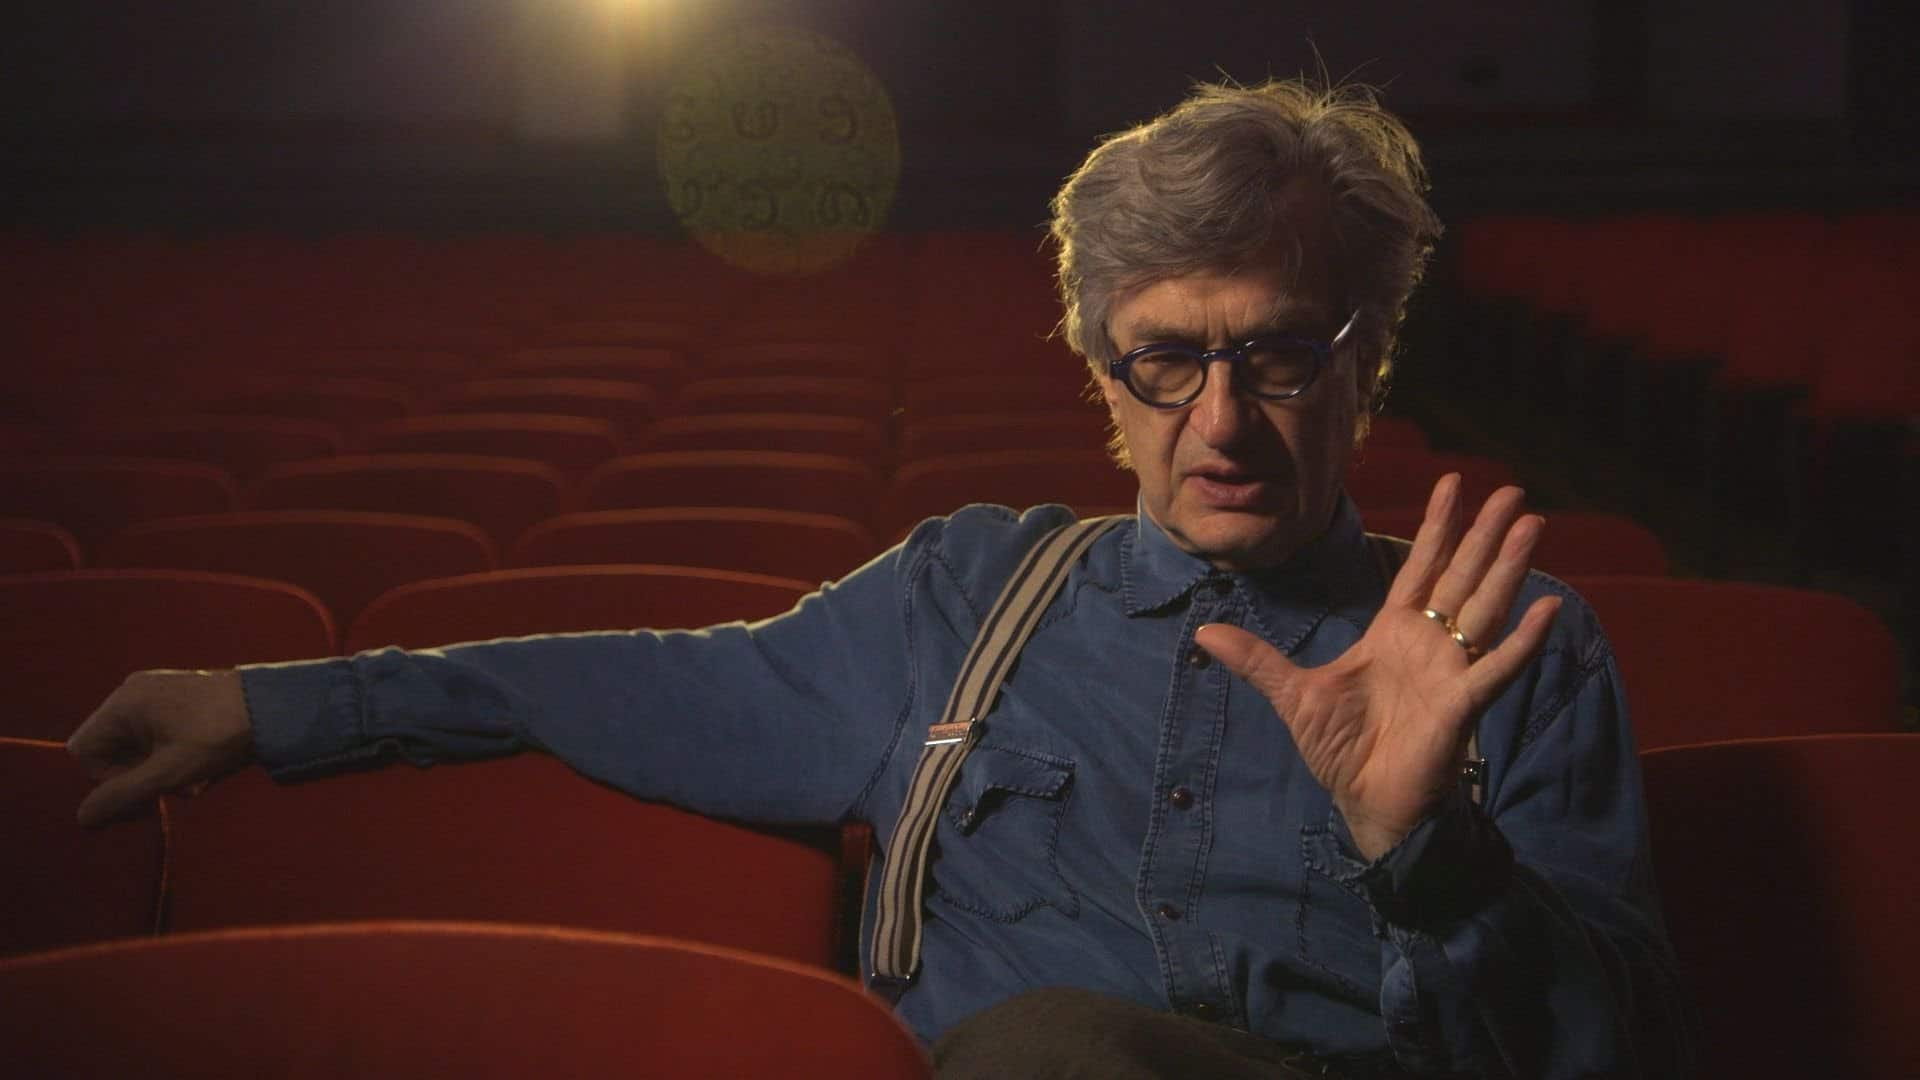 Wim Wenders, 71, makes a successful opera debut